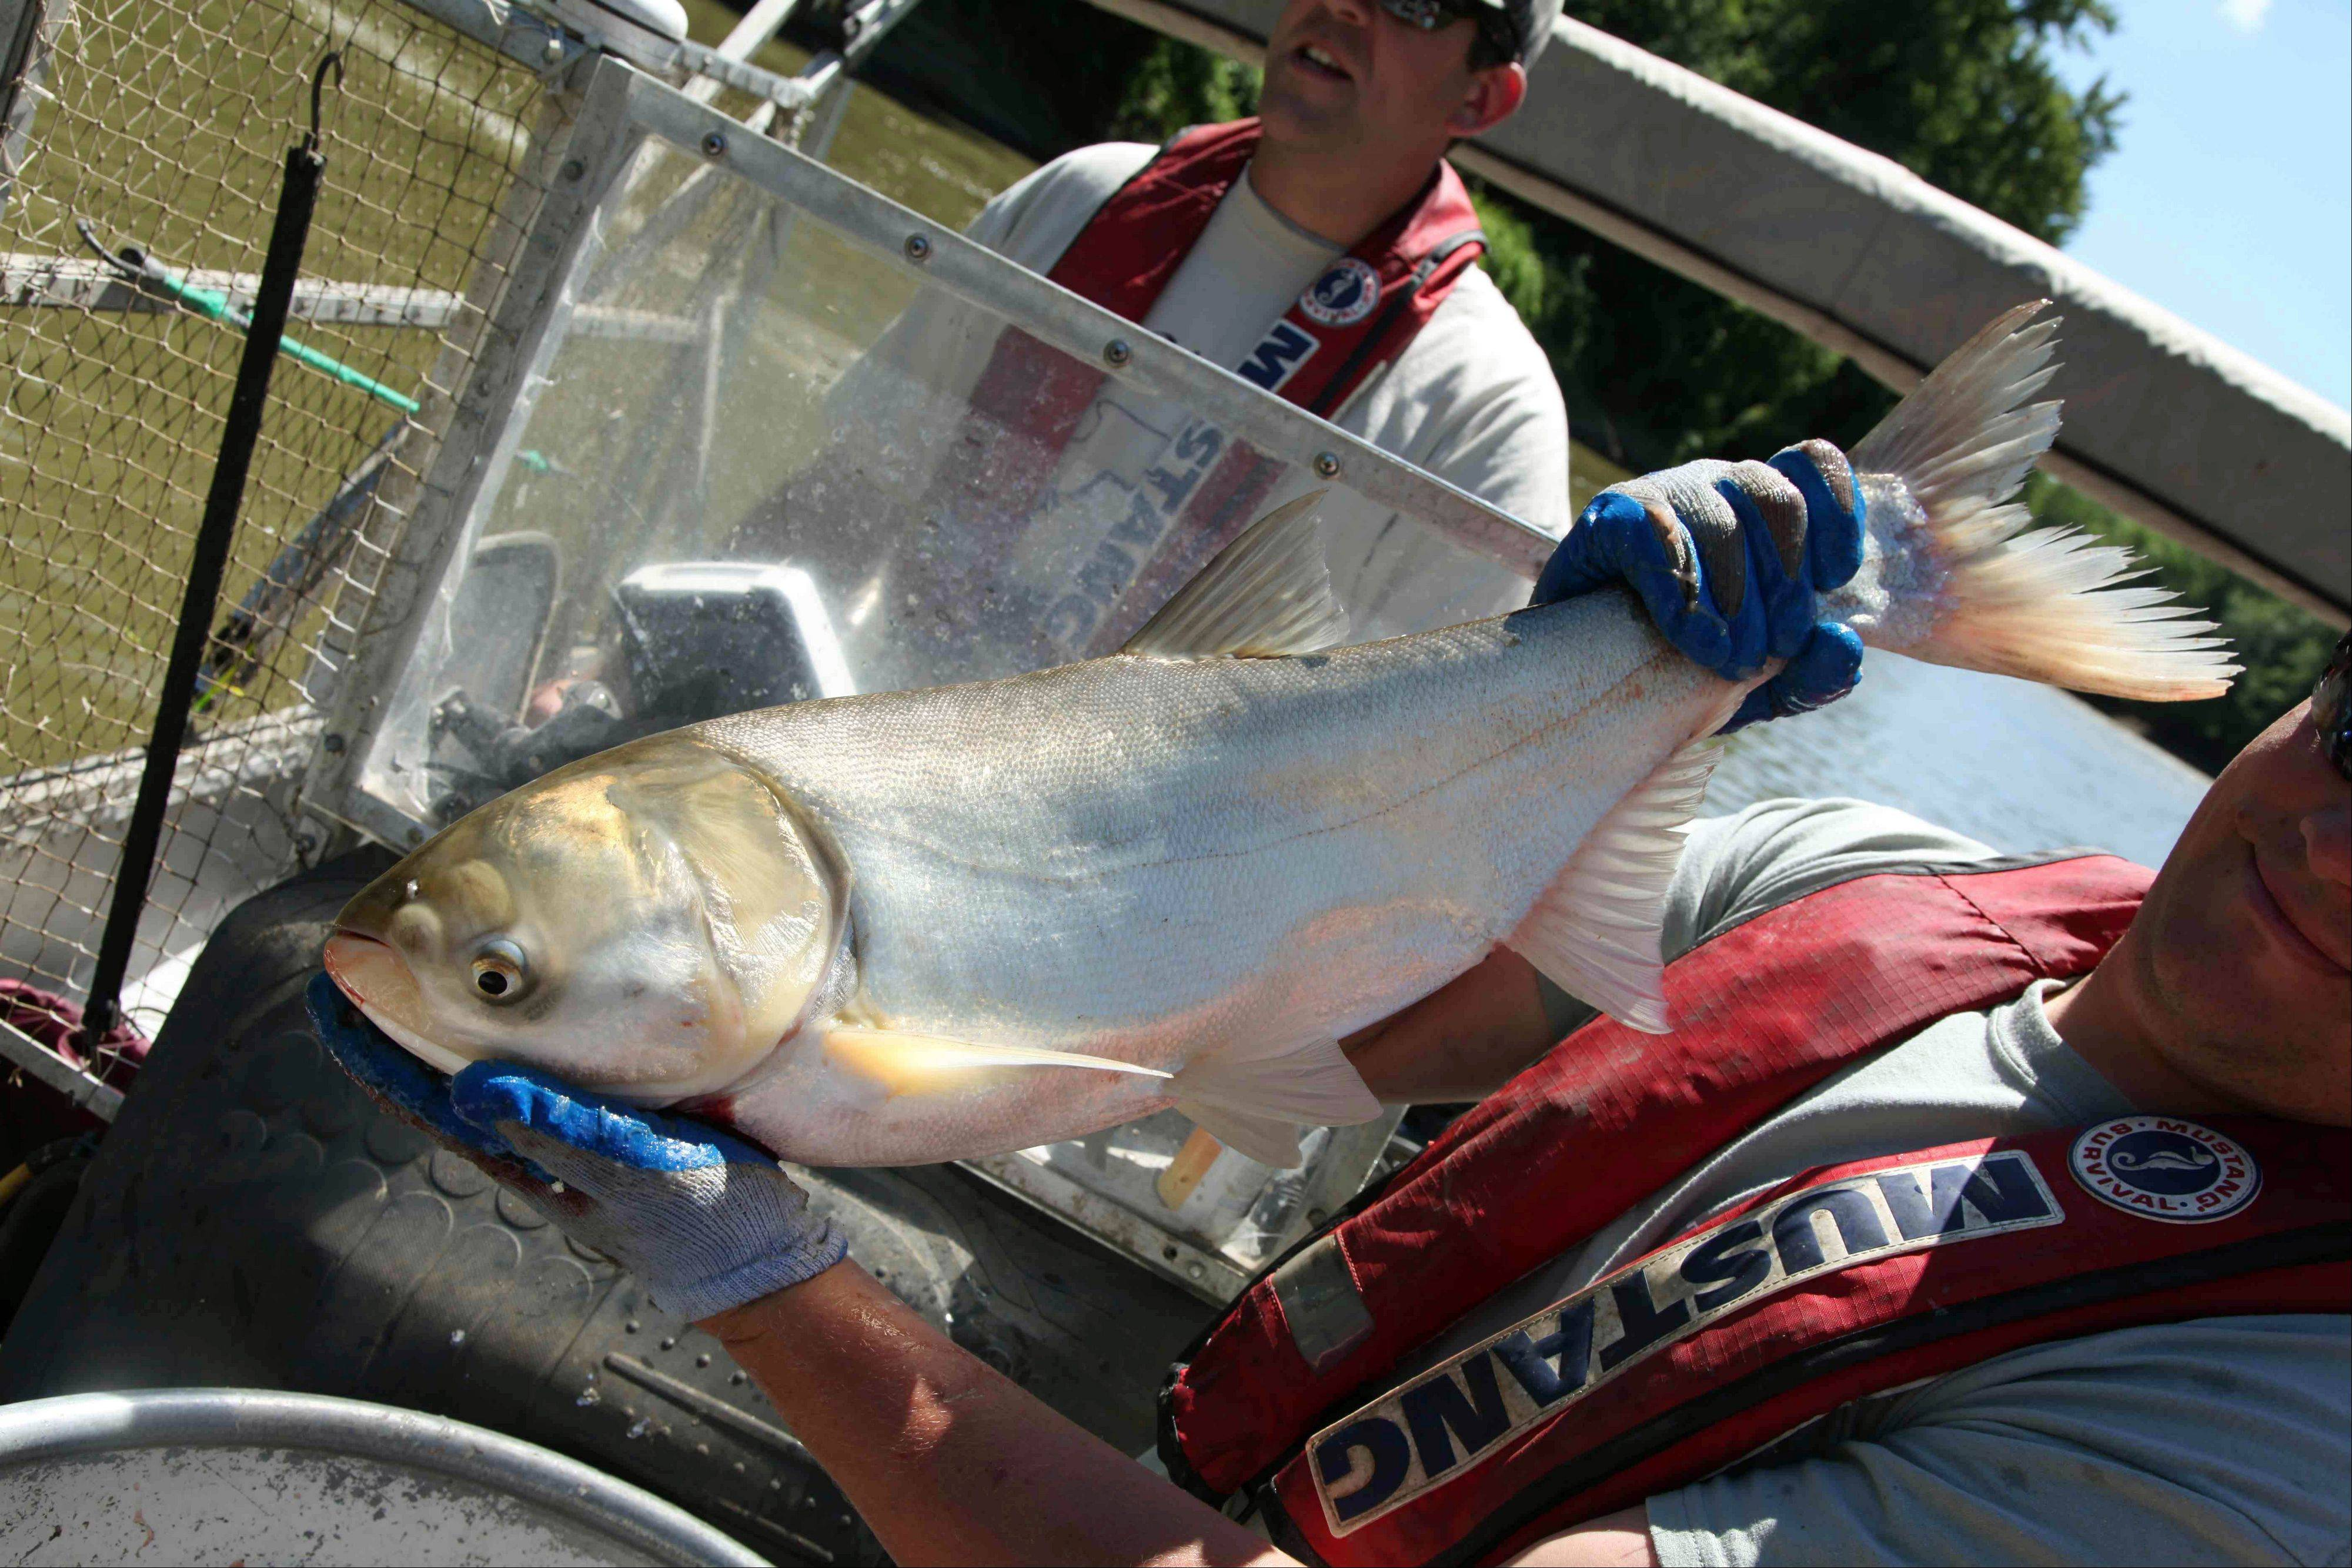 Travis Schepker, a biology intern, holds an Asian carp pulled from the Illinois River near Havana, Ill. Scientists are monitoring native fish populations for signs of damage from Asian carp.